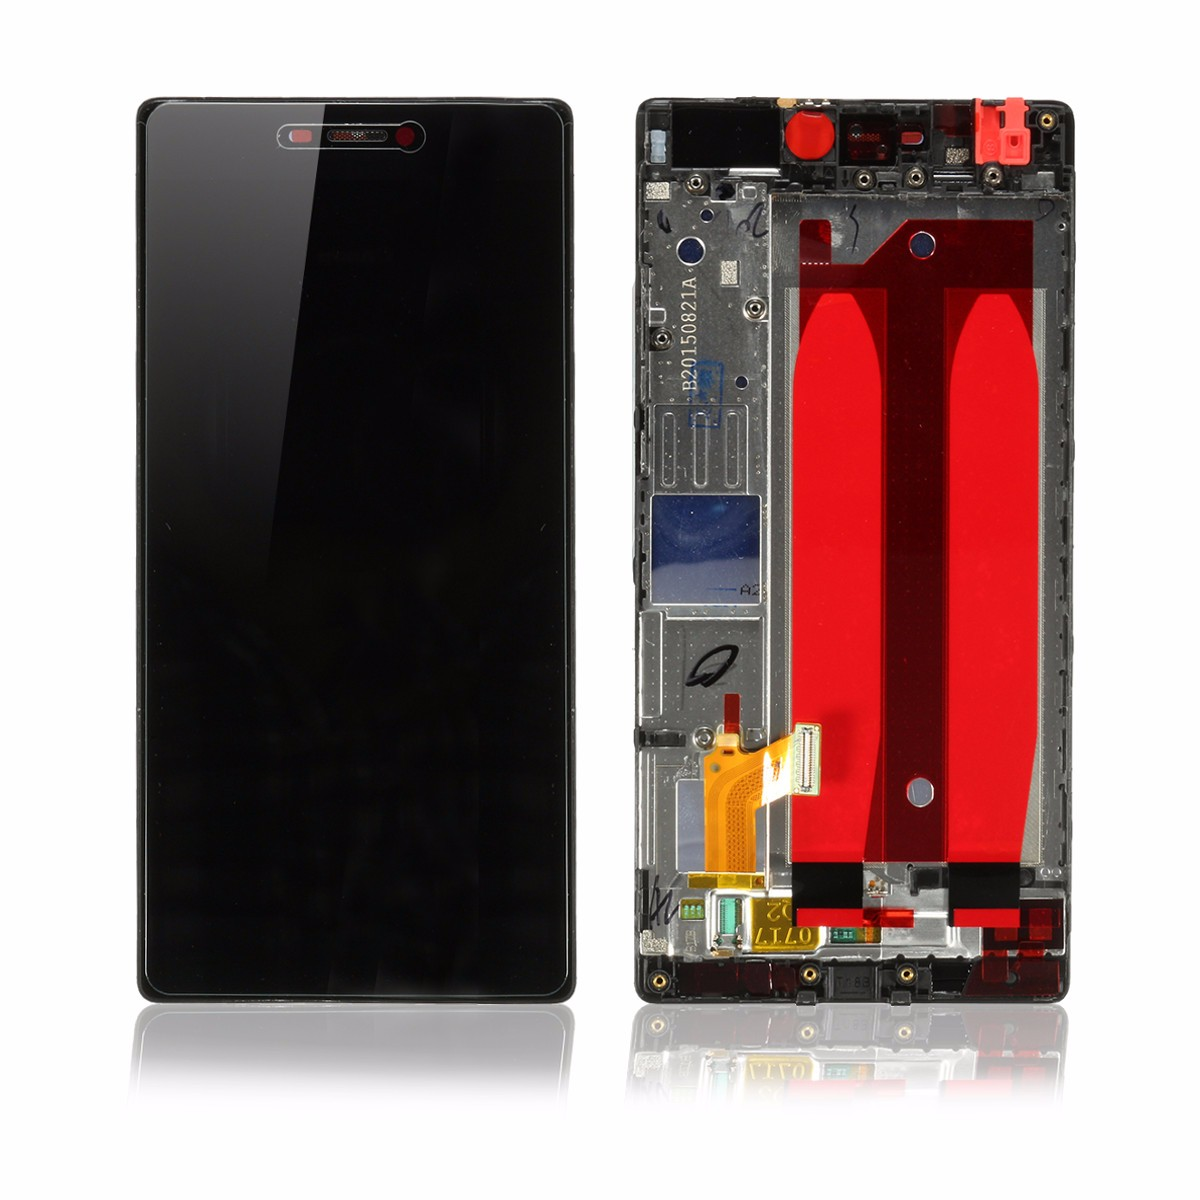 Buy Original LCD Display Assembled Frame Touch Screen For Huawei Ascend P8